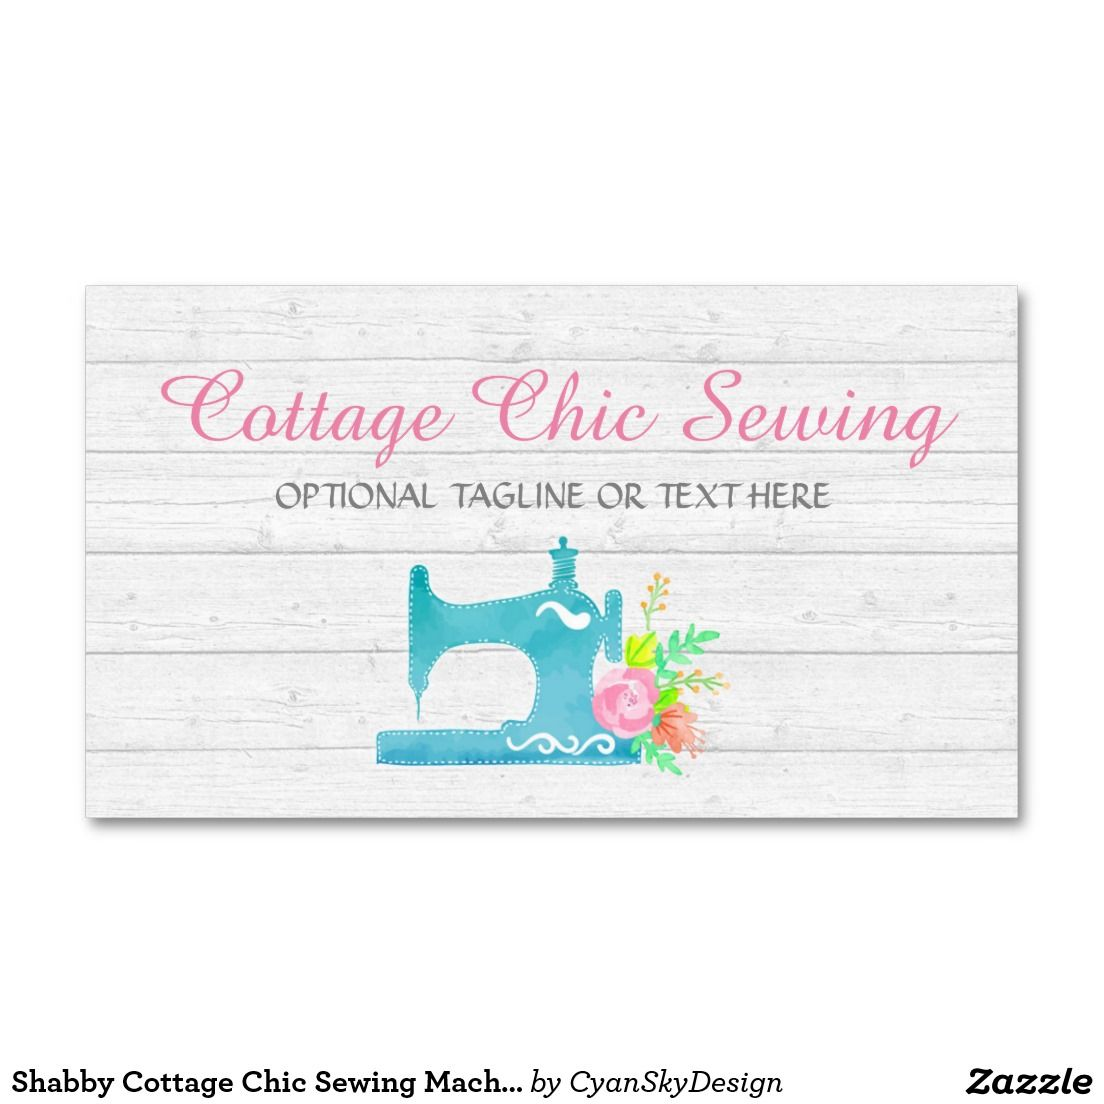 Shabby cottage chic sewing machine rustic wood business card shabby cottage chic sewing machine rustic wood business card reheart Image collections